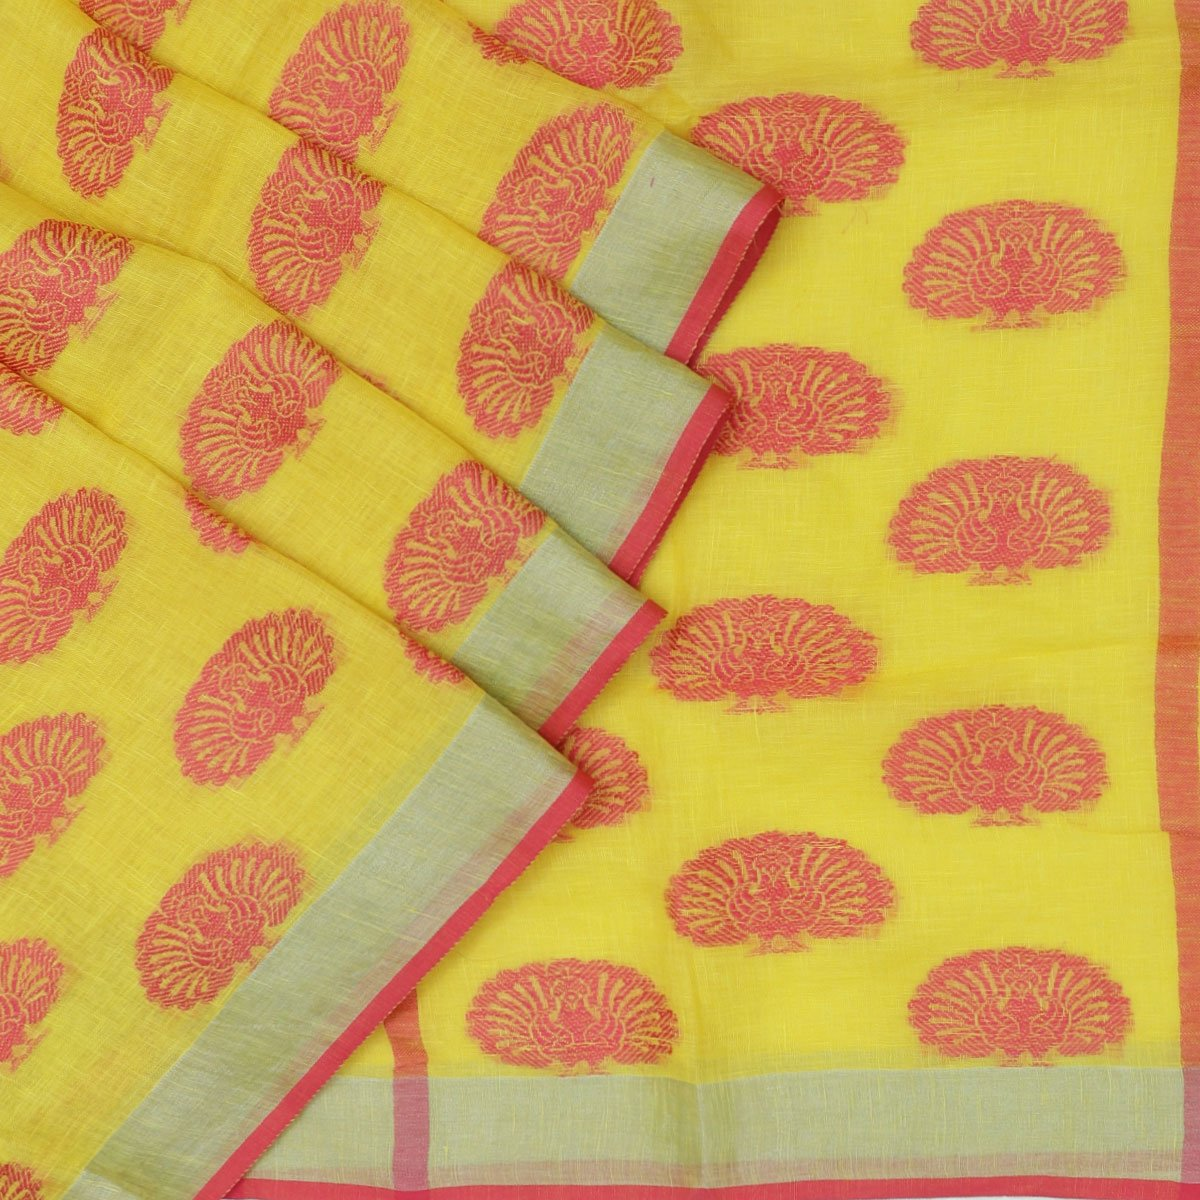 Linen Saree Yellow and Pink with Peacock thread butta and simple border Partly